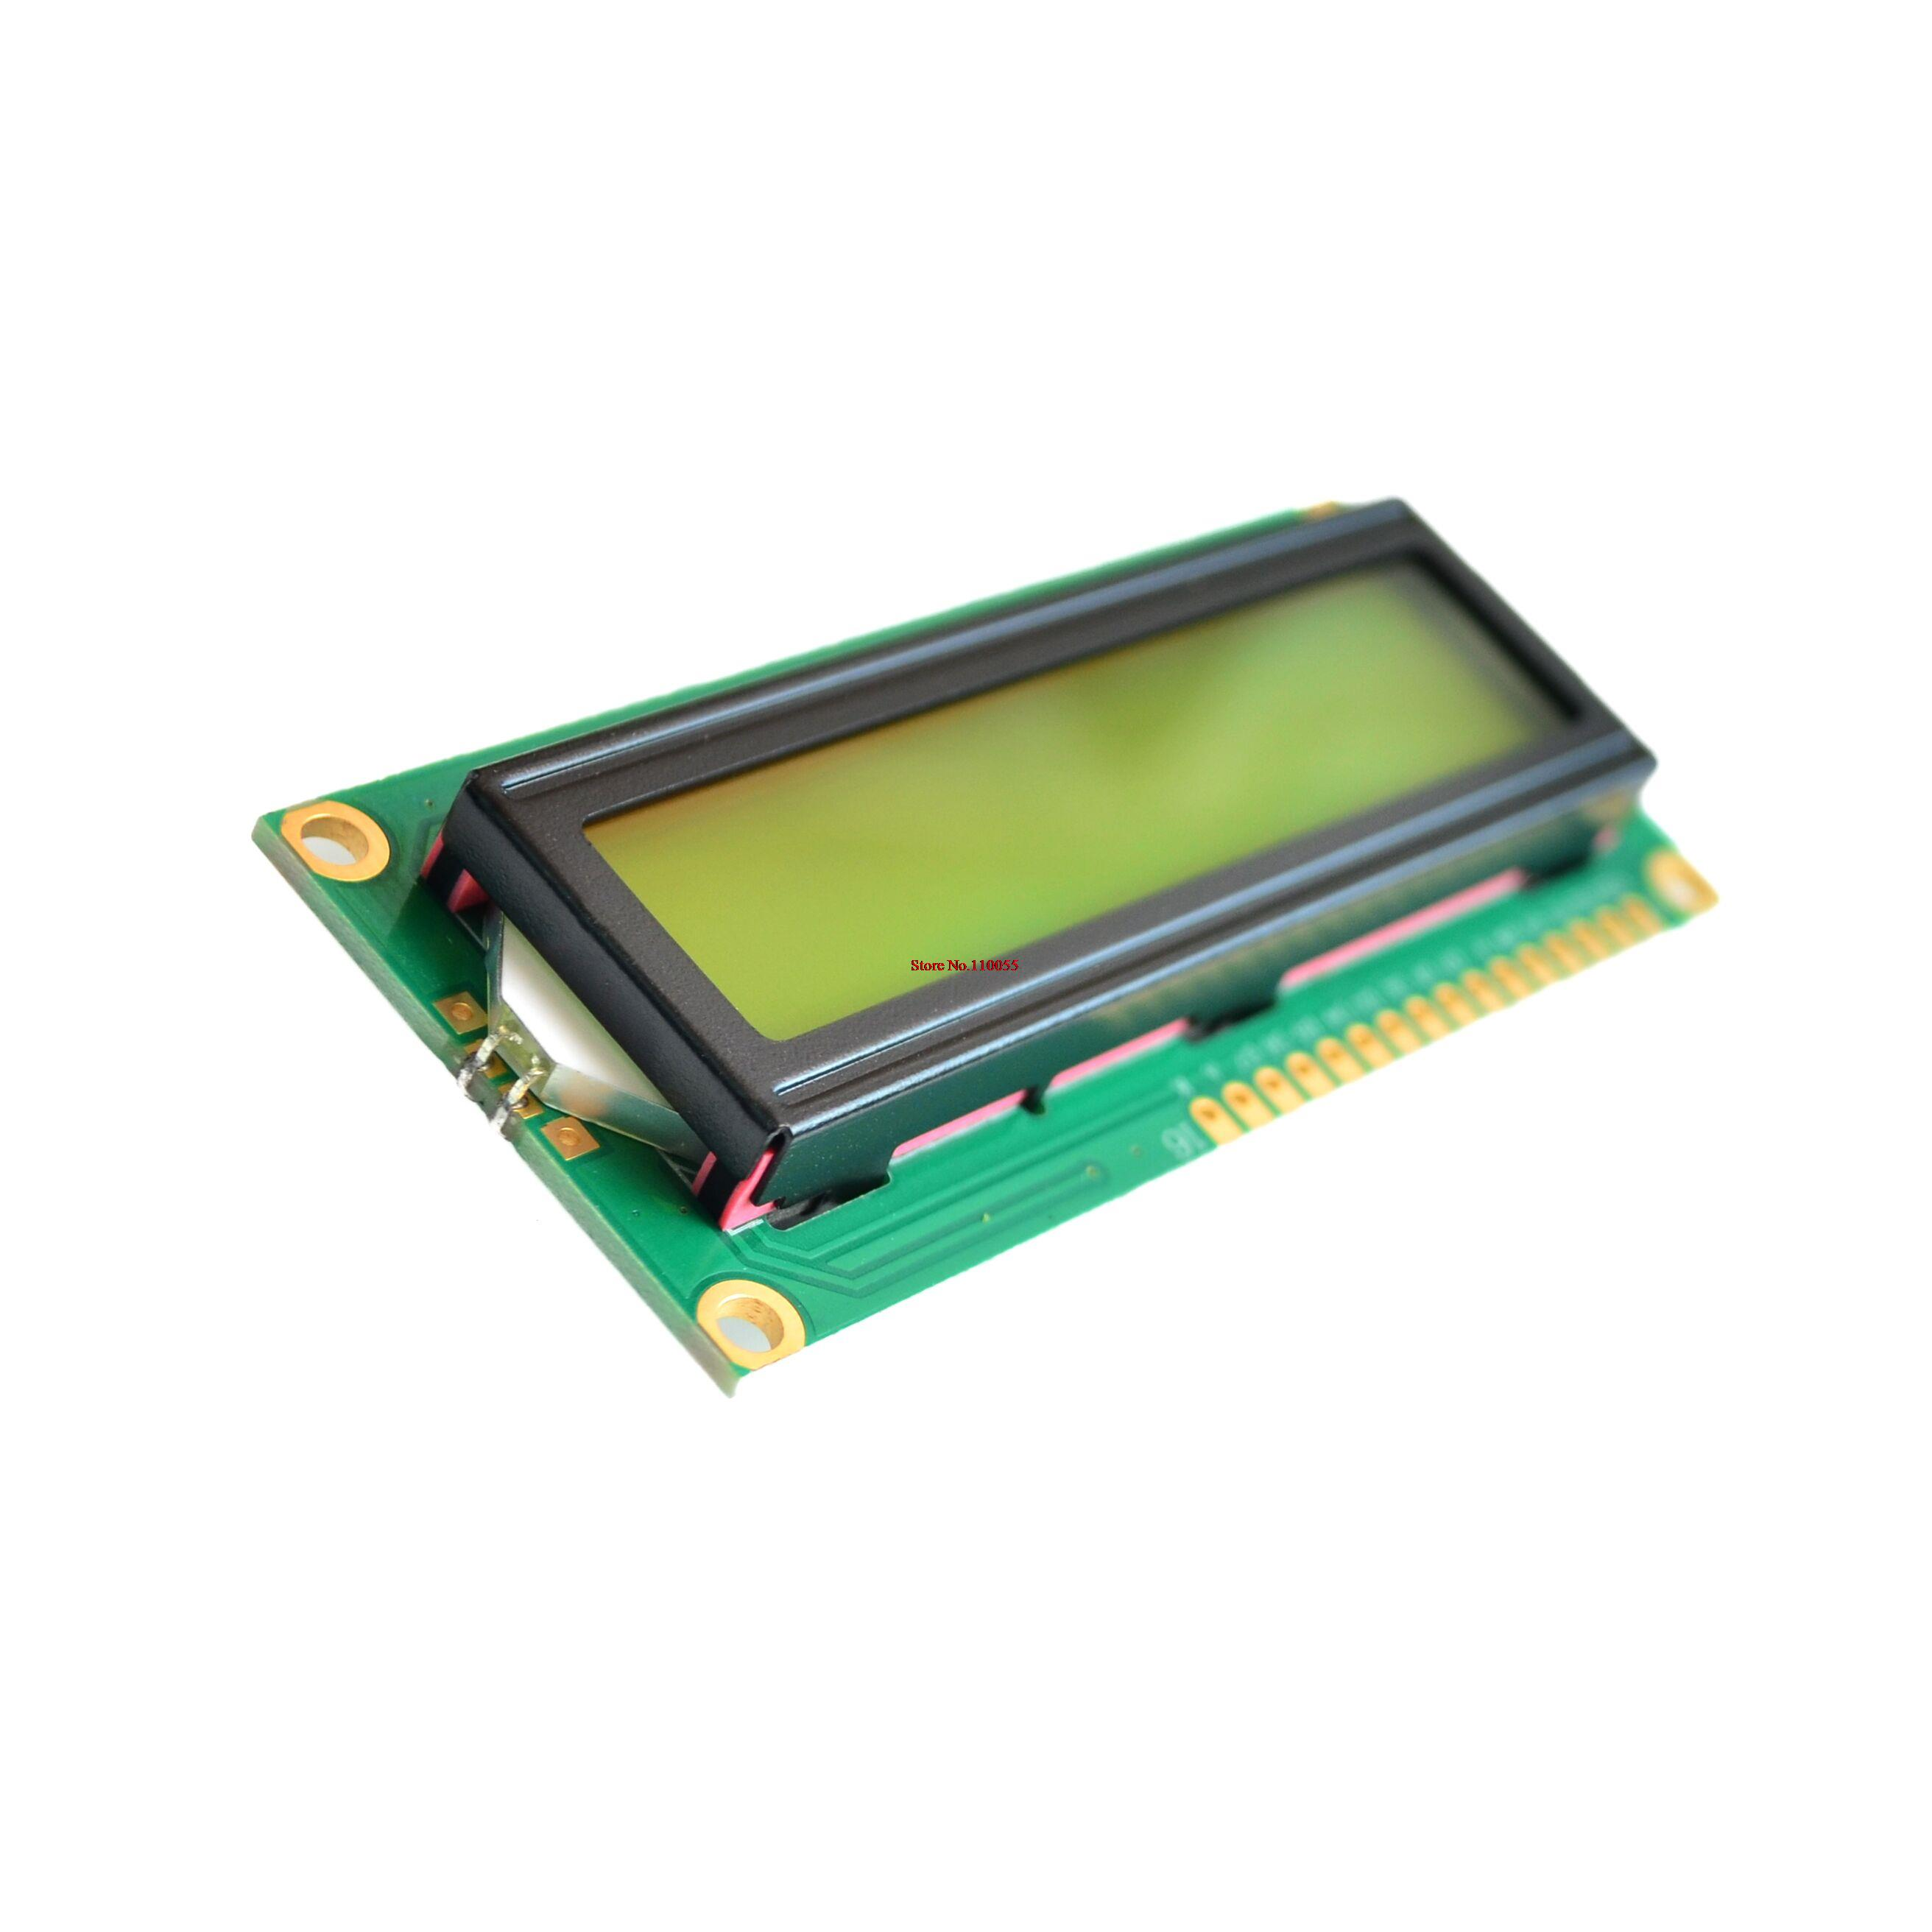 16x2 Character Lcd Display Module With Fpc Connector Acm1602fa 2x16 162 16 X 2 1602 Arduino Raspberry Lcm Yellow Green In Modules From Electronic Components Supplies